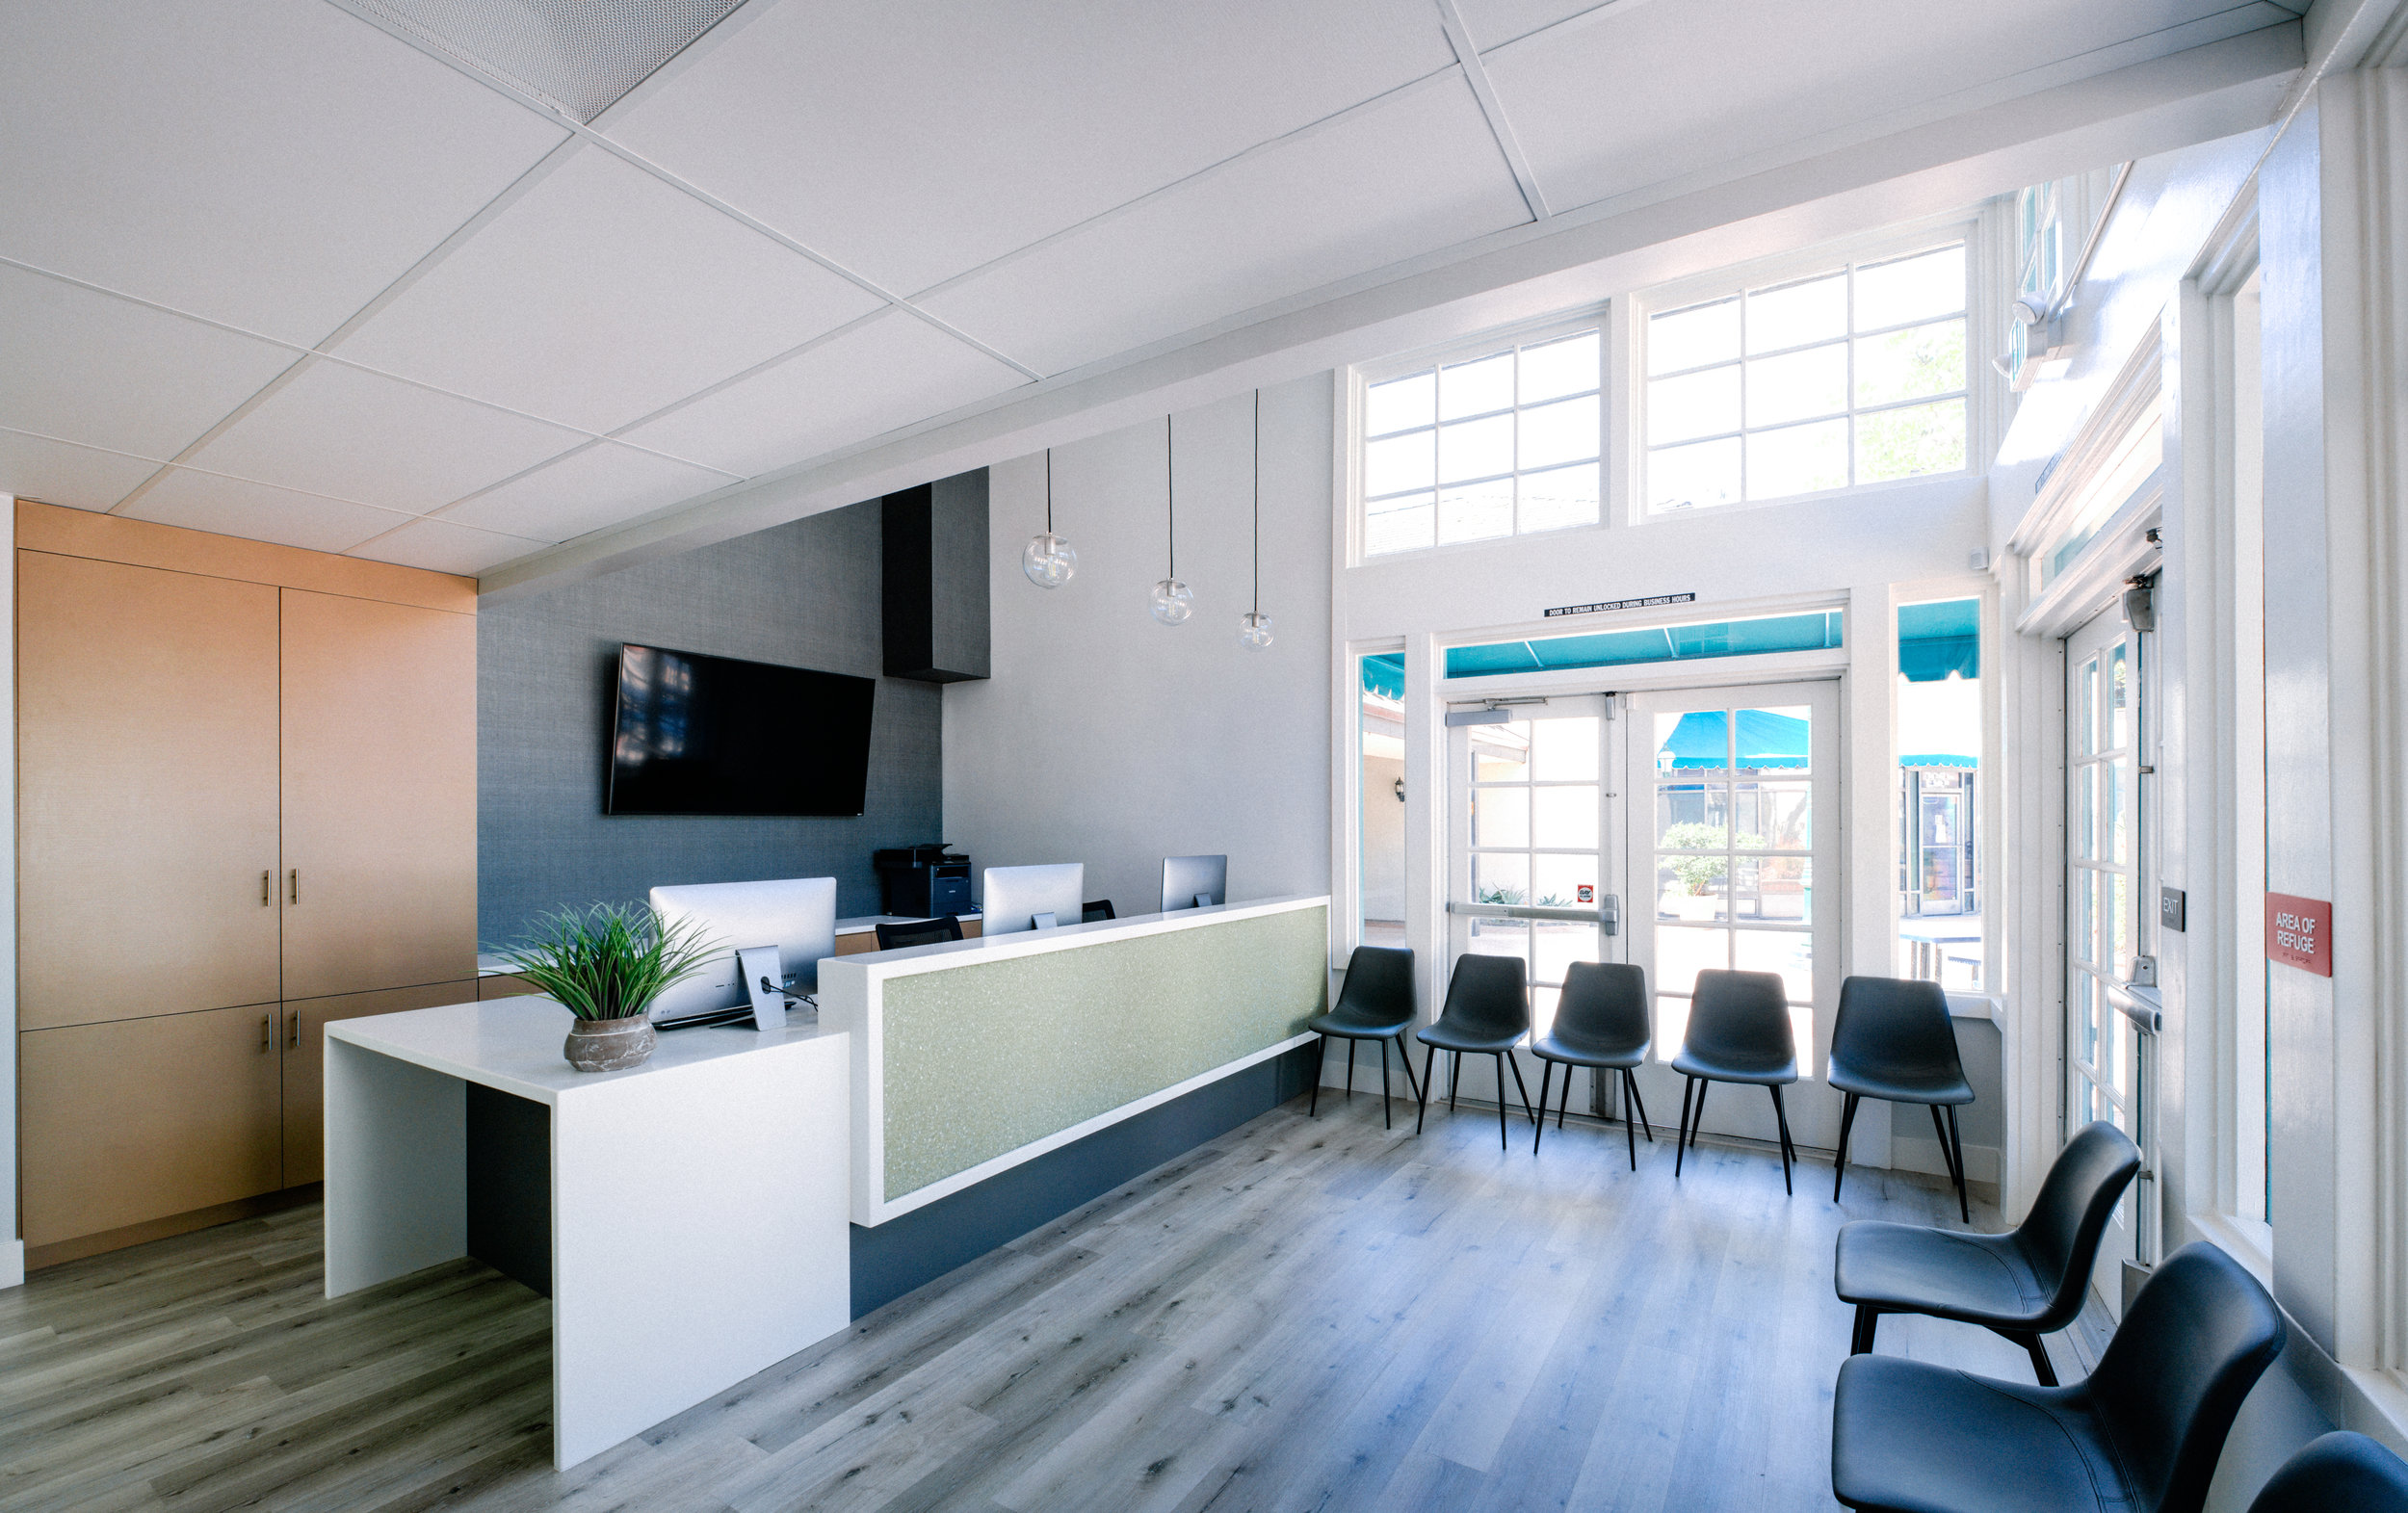 RIVERA FAMILY CHIROPRACTIC - Rivera Family Chiropractic was a complete remodel of an existing restaurant and turn into a new chiropractic's clinic including space planning and design. Project consisted on the demolition of existing walls, ceiling, kitchen, and mechanical units to accommodate for a new layout to accommodate for x-ray room, office space, waiting areas, therapy rooms, and reception. New finishes color scheme and title 24 were part of the remodel.Location: 310 3rd Ave Chula Vista CA 91910